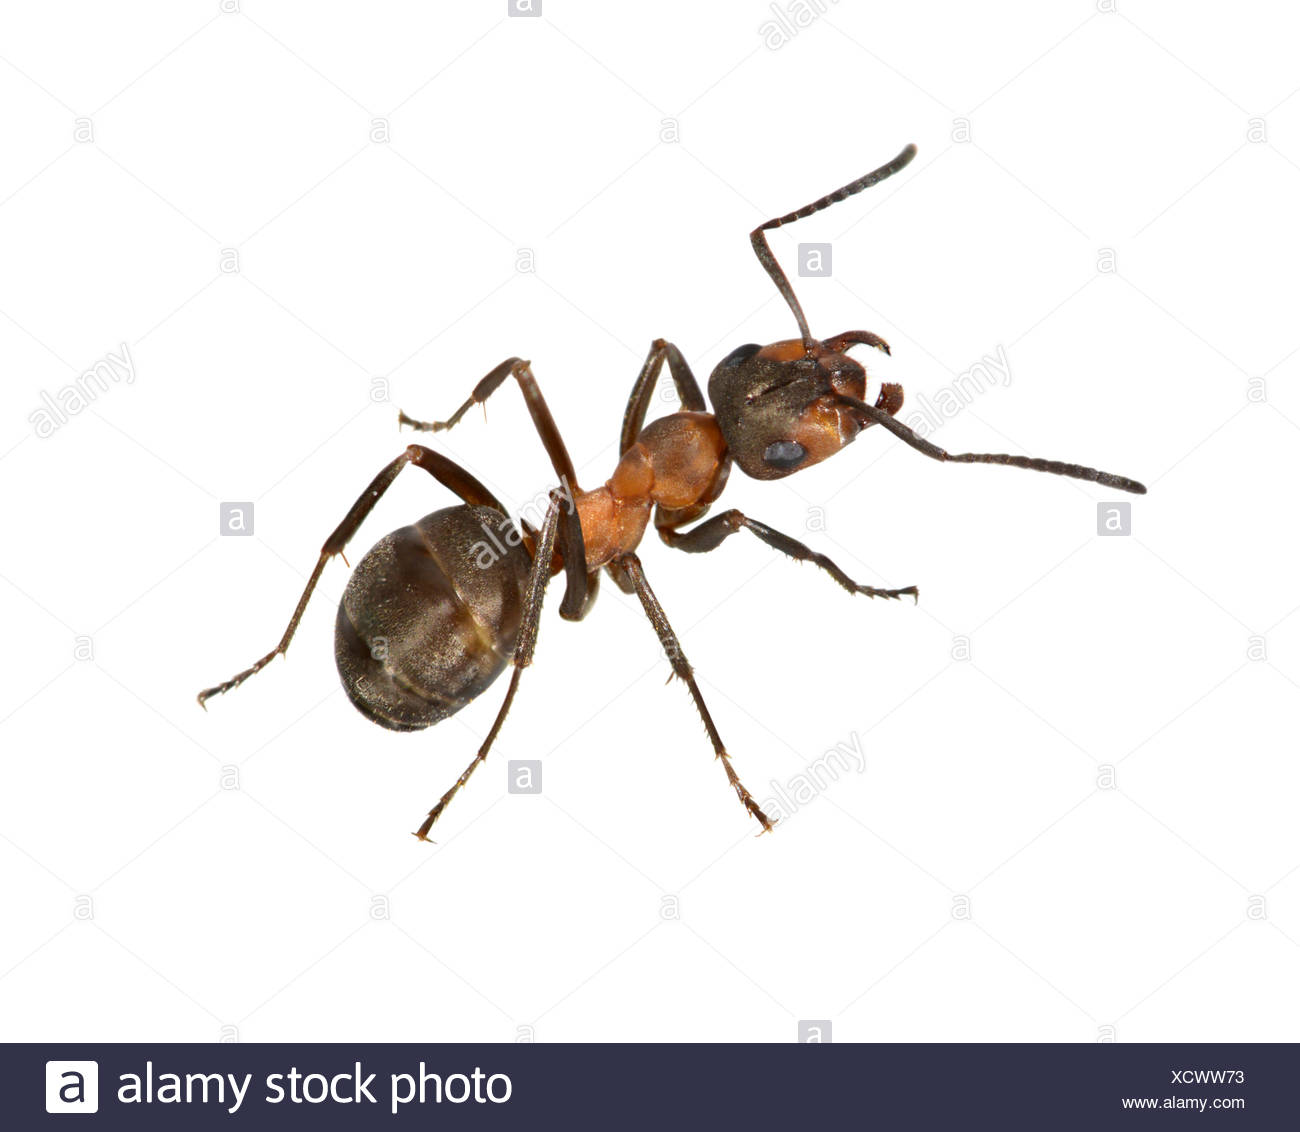 Wood Ant - Formica rufa - Stock Image